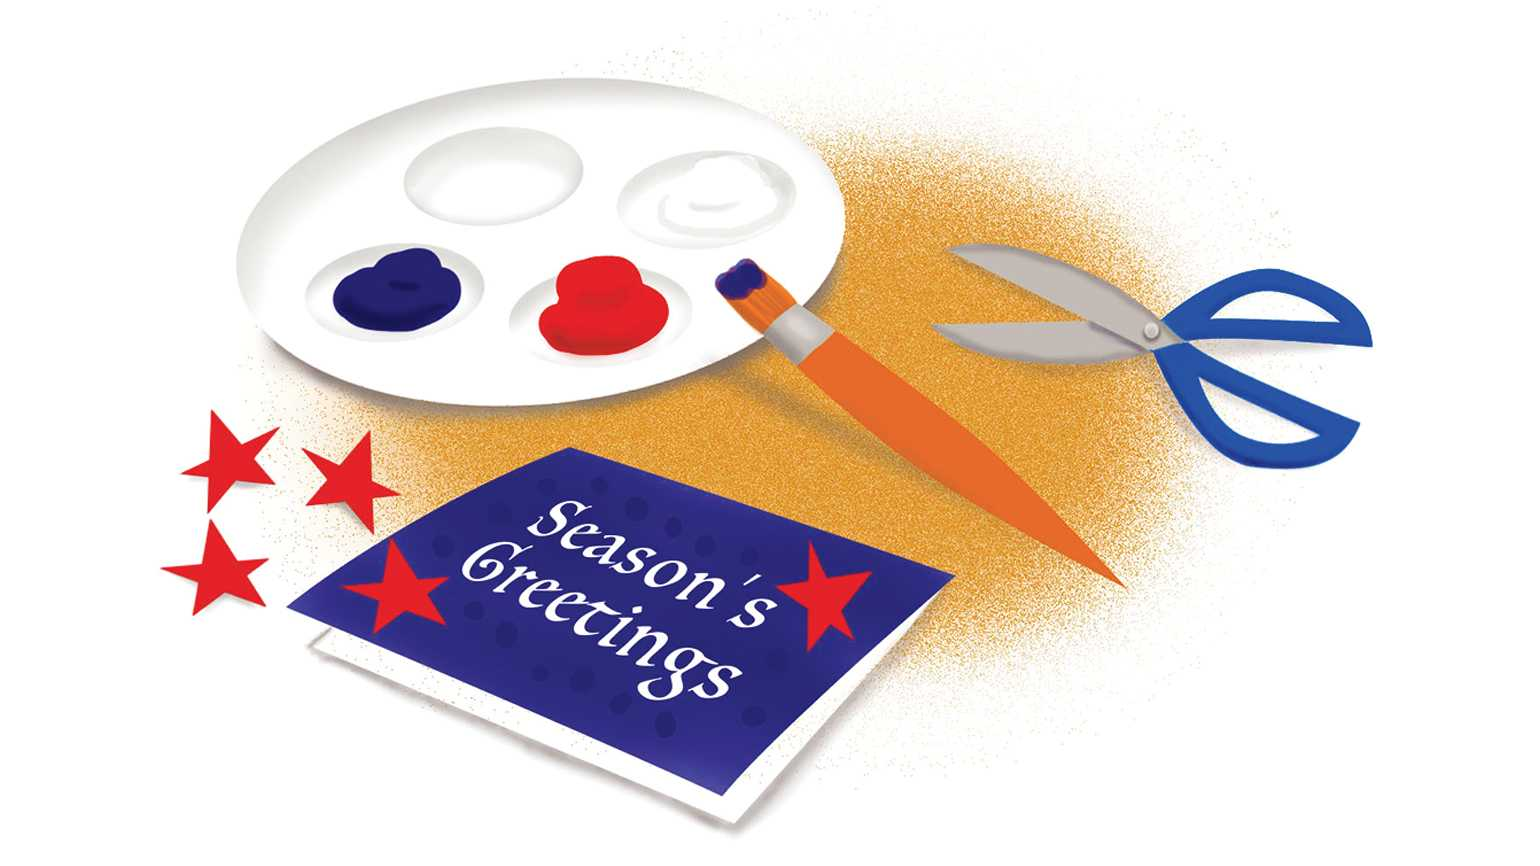 An artist's rendering of a patriotic Season's Greetings card.